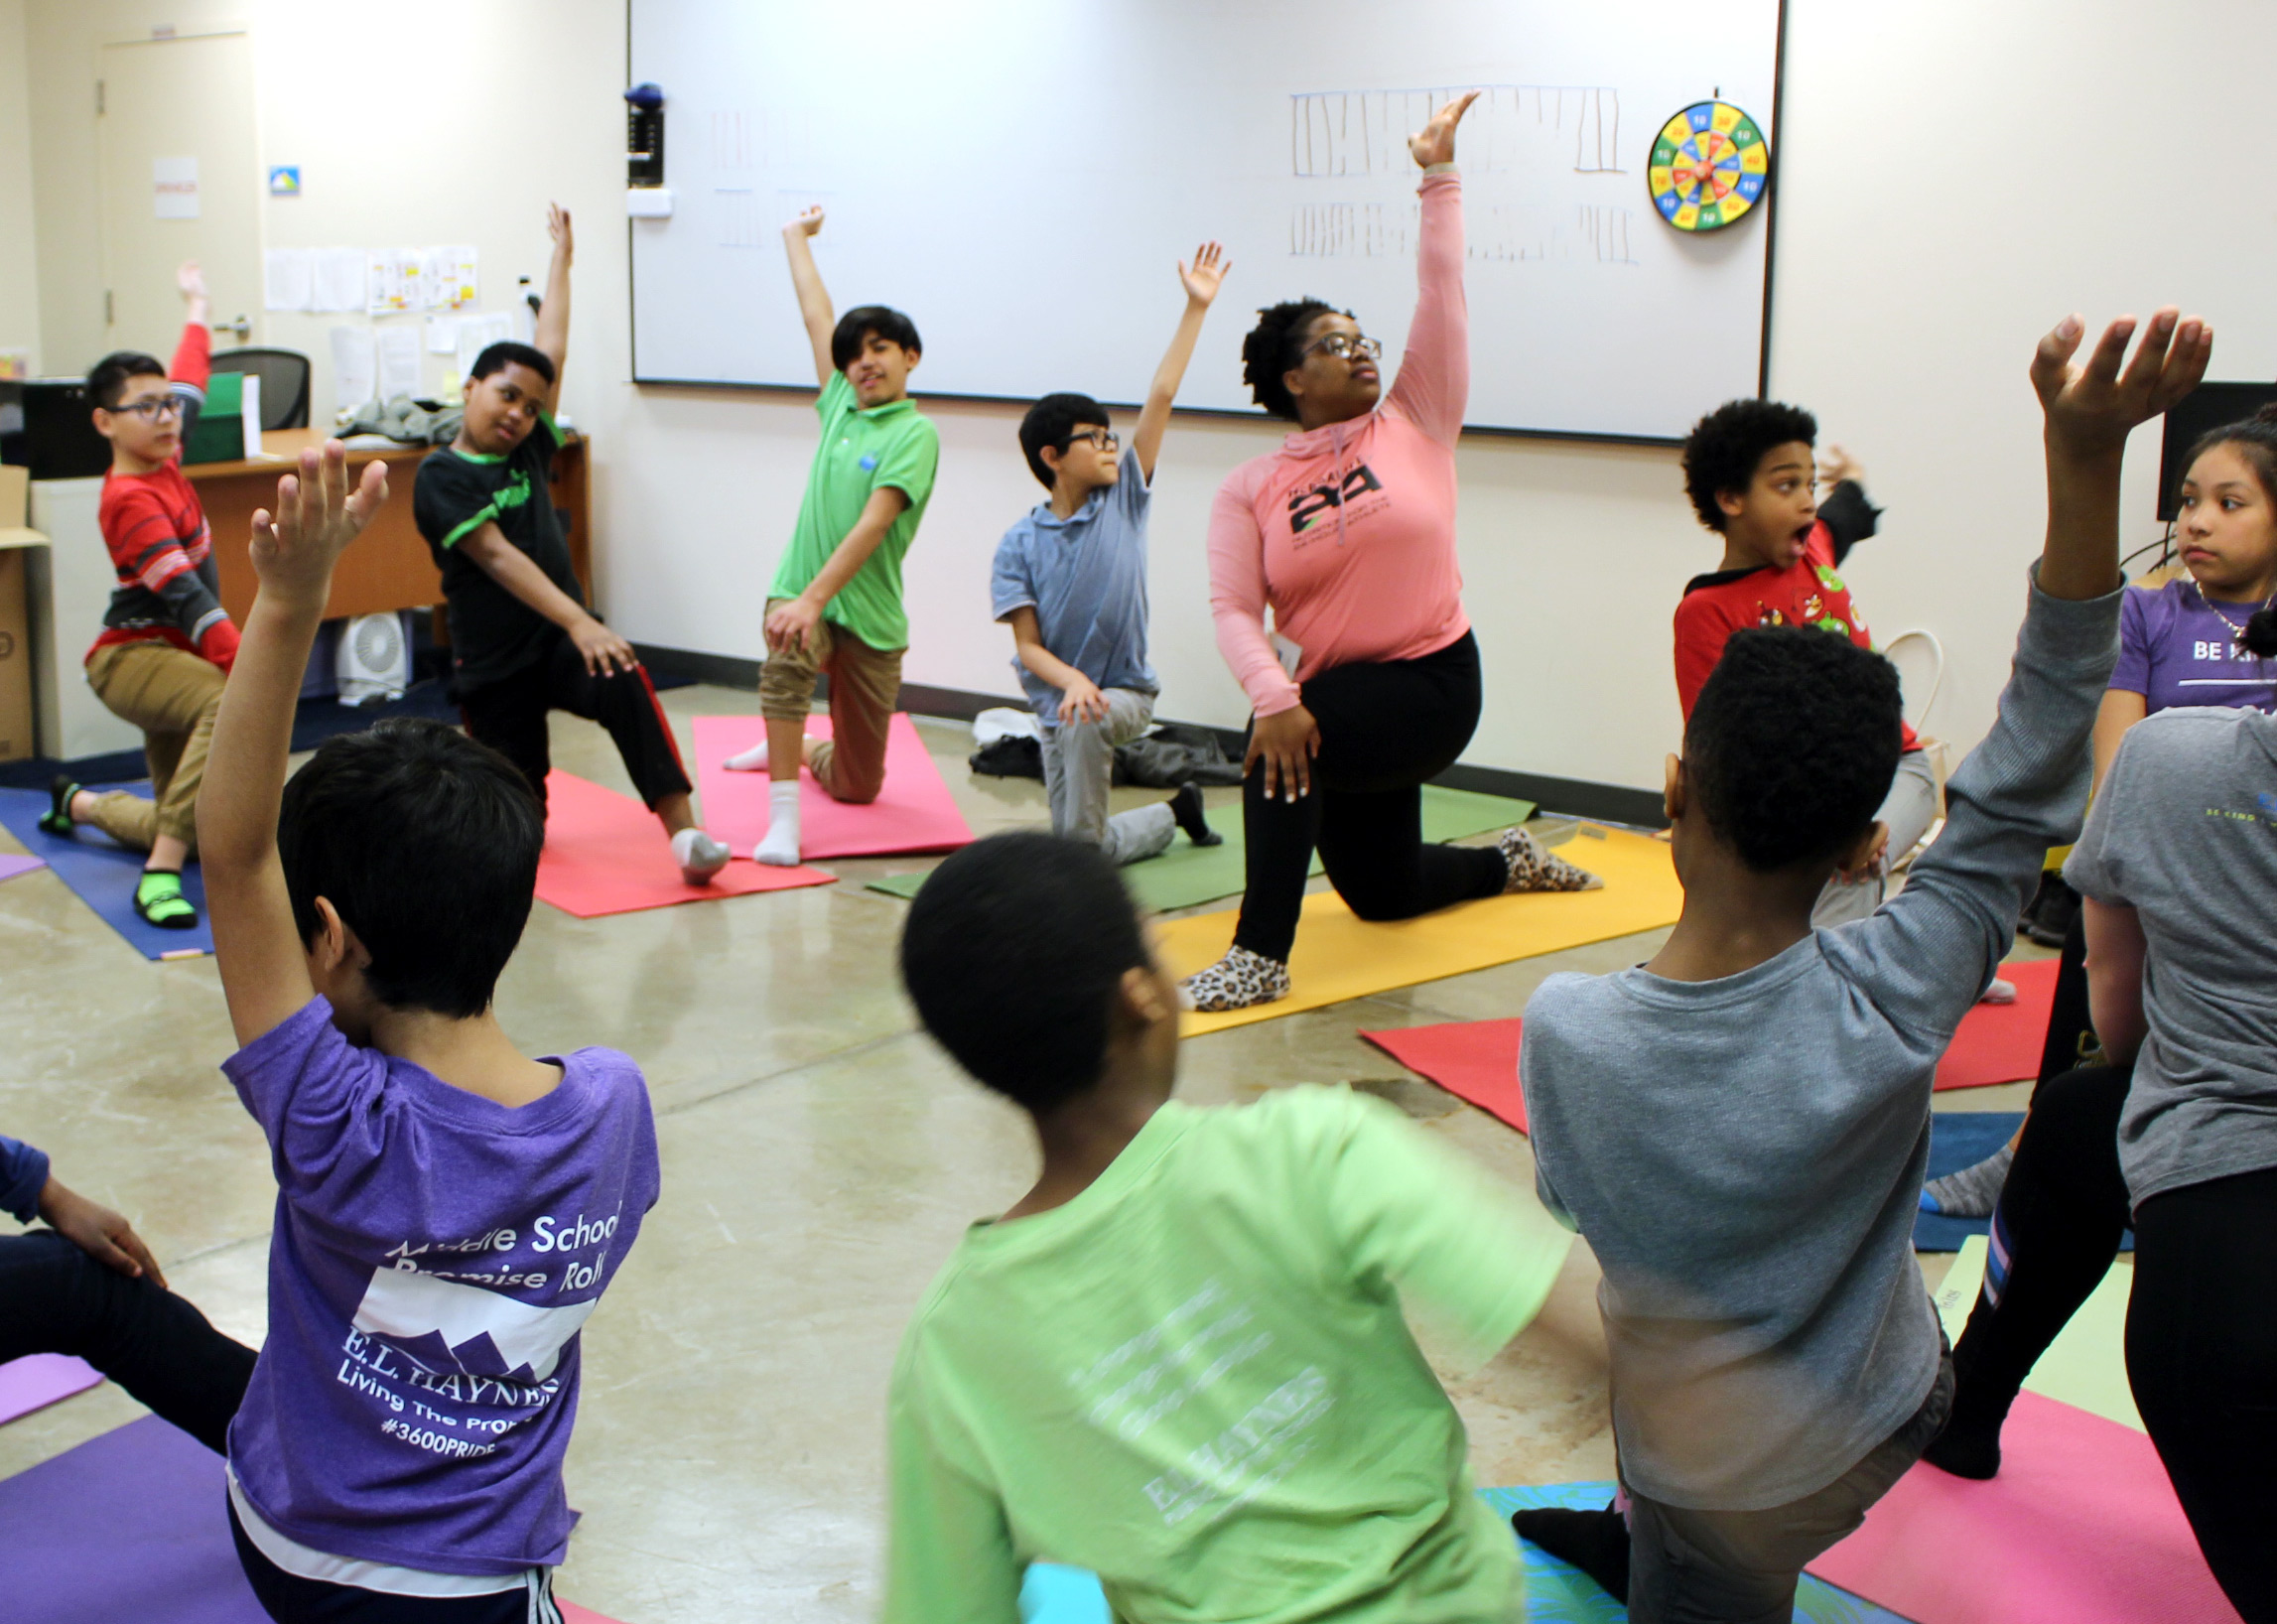 Middle school students learn new yoga poses and practice mindfulness during our annual campus-wide Wellness Day.